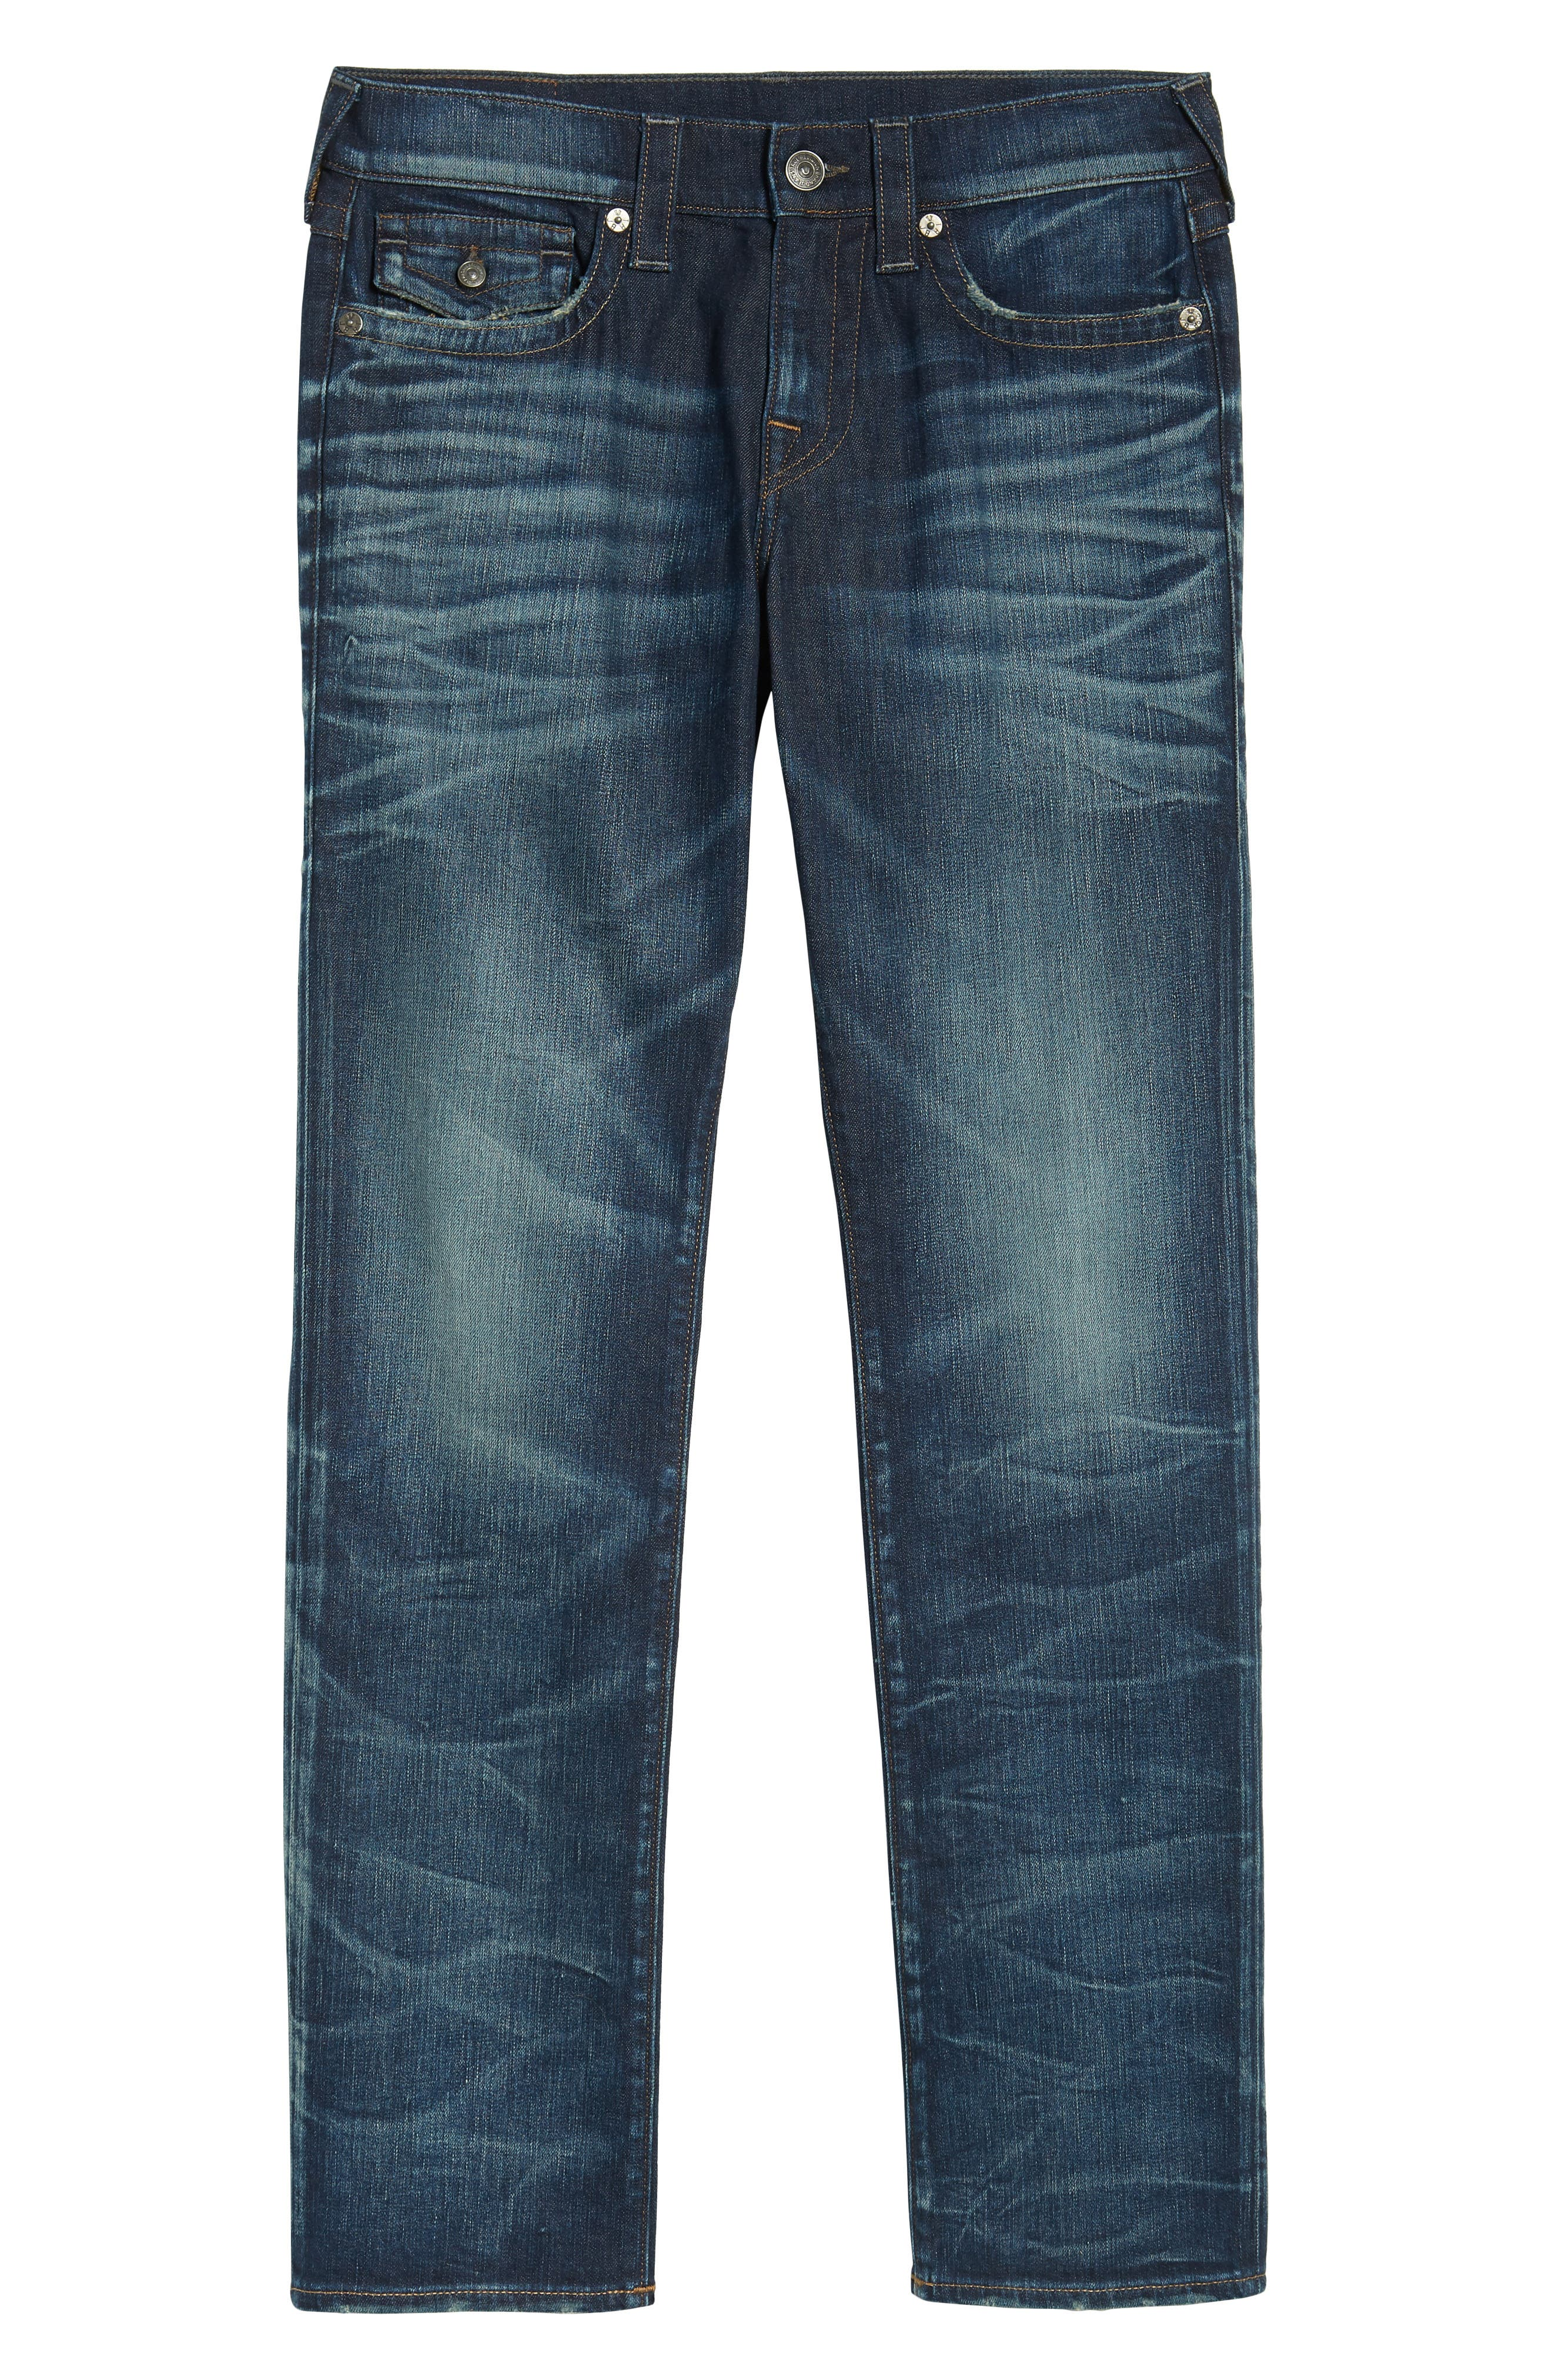 Ricky Relaxed Fit Jeans,                             Alternate thumbnail 6, color,                             Combat Blues